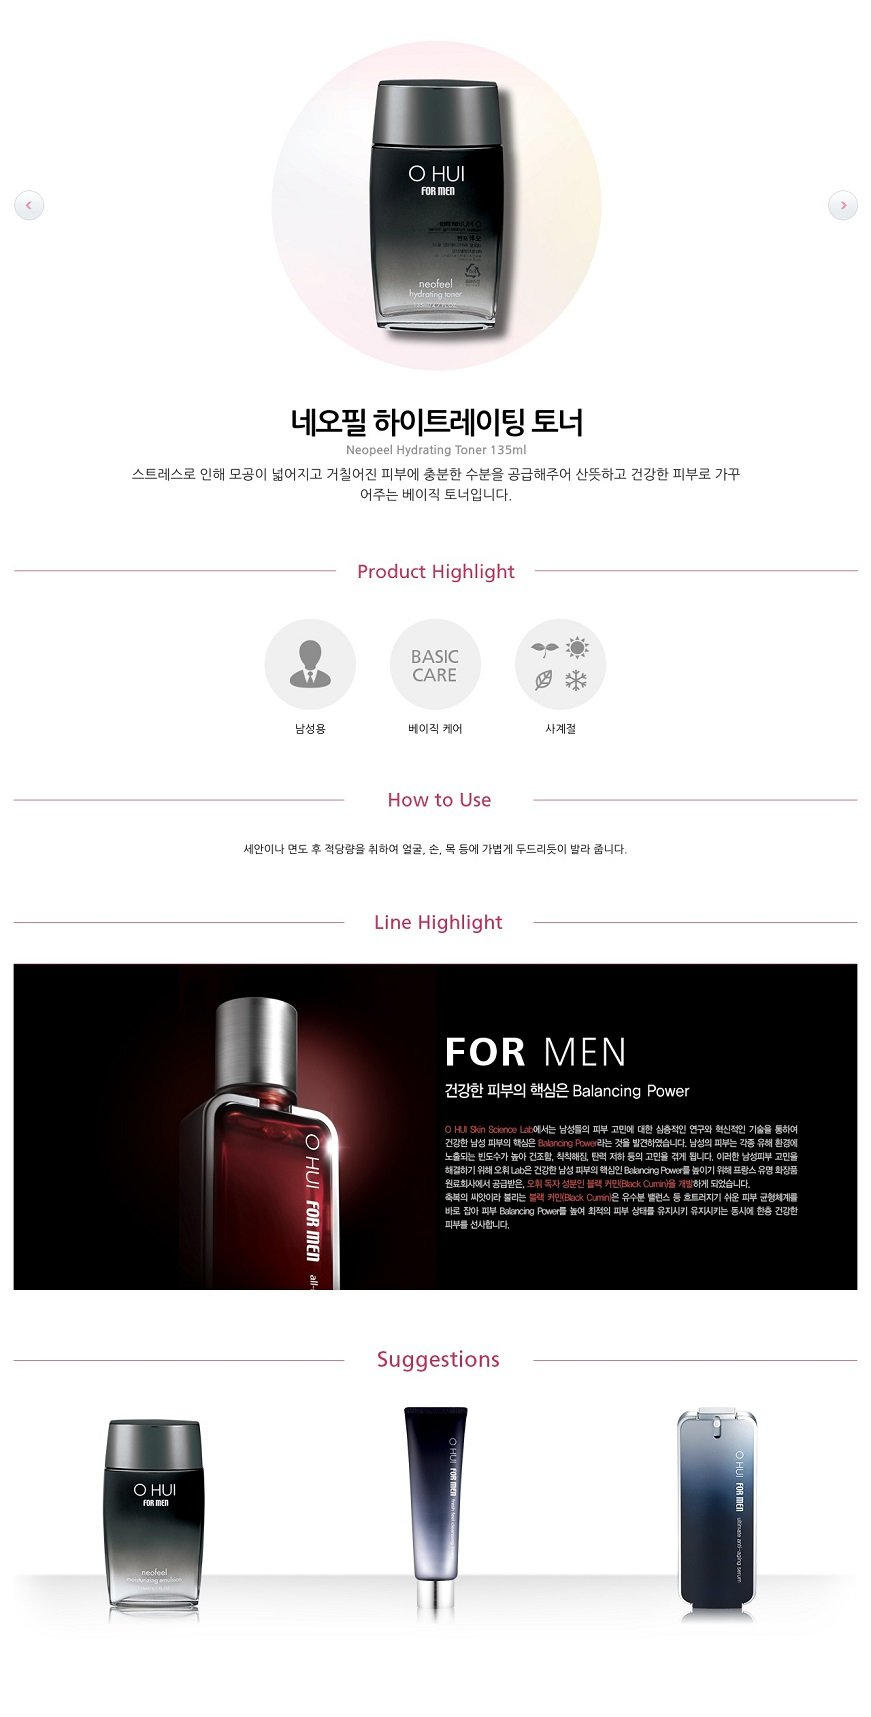 Ohui For Men Neofeel Hydrating Toner Korean Skincare Shop Malaysia 150ml 135ml Singapore Indonesia